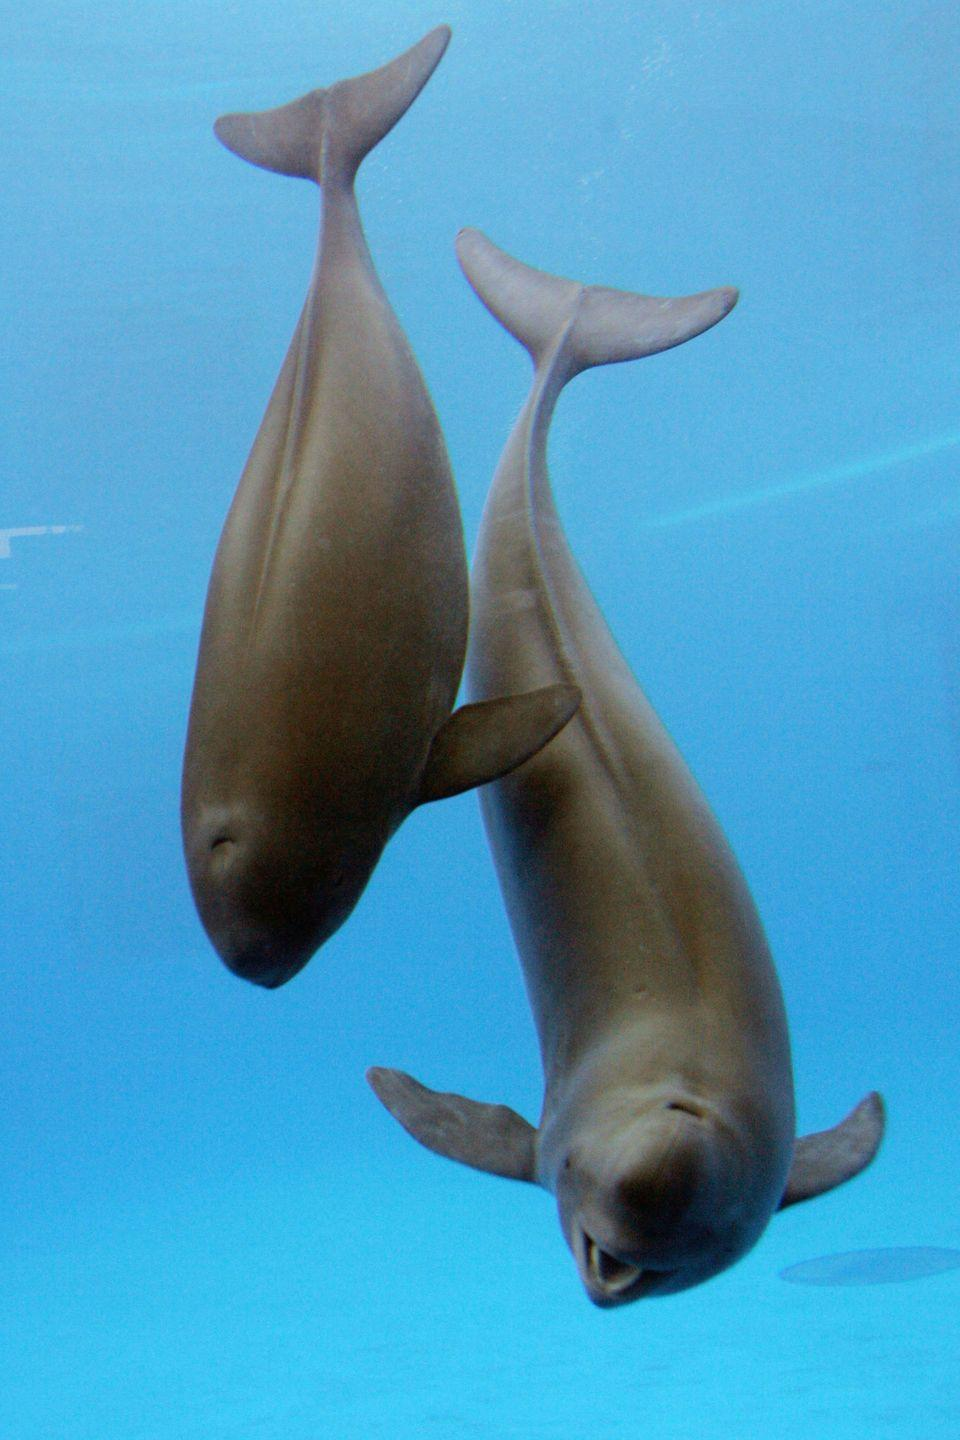 "<p><strong>Scientific classification:</strong> <em>Neophocaena asiaeorientalis</em></p><p><strong>Location:</strong> China</p><p>While the finless porpoise is considered merely threatened in its habitat across Pacific and Indian ocean coastal waters, the Yangtze River population is in rapid decline. There were just <a href=""https://www.worldwildlife.org/species/yangtze-finless-porpoise"" rel=""nofollow noopener"" target=""_blank"" data-ylk=""slk:1,800 reported 10 years ago"" class=""link rapid-noclick-resp"">1,800 reported 10 years ago</a>, and the population may be as low as 500 now.<br></p><p>Wide-scale infrastructure projects on the river and industrial pollutants have affected the ecosystem of the river downstream, which, combined with bycatch fishing and boating activities, drove the aforementioned baiji to extinction. The pollution of the Yangtze also contributes vastly to pollution in the ocean. An alligator species that lives in the river is in precipitous decline as well, with only 120 left. The problems facing the Yangtze are, in other words, not just isolated to one species, but to the entire ecosystem, and ecosystems that live downstream of the river.</p>"